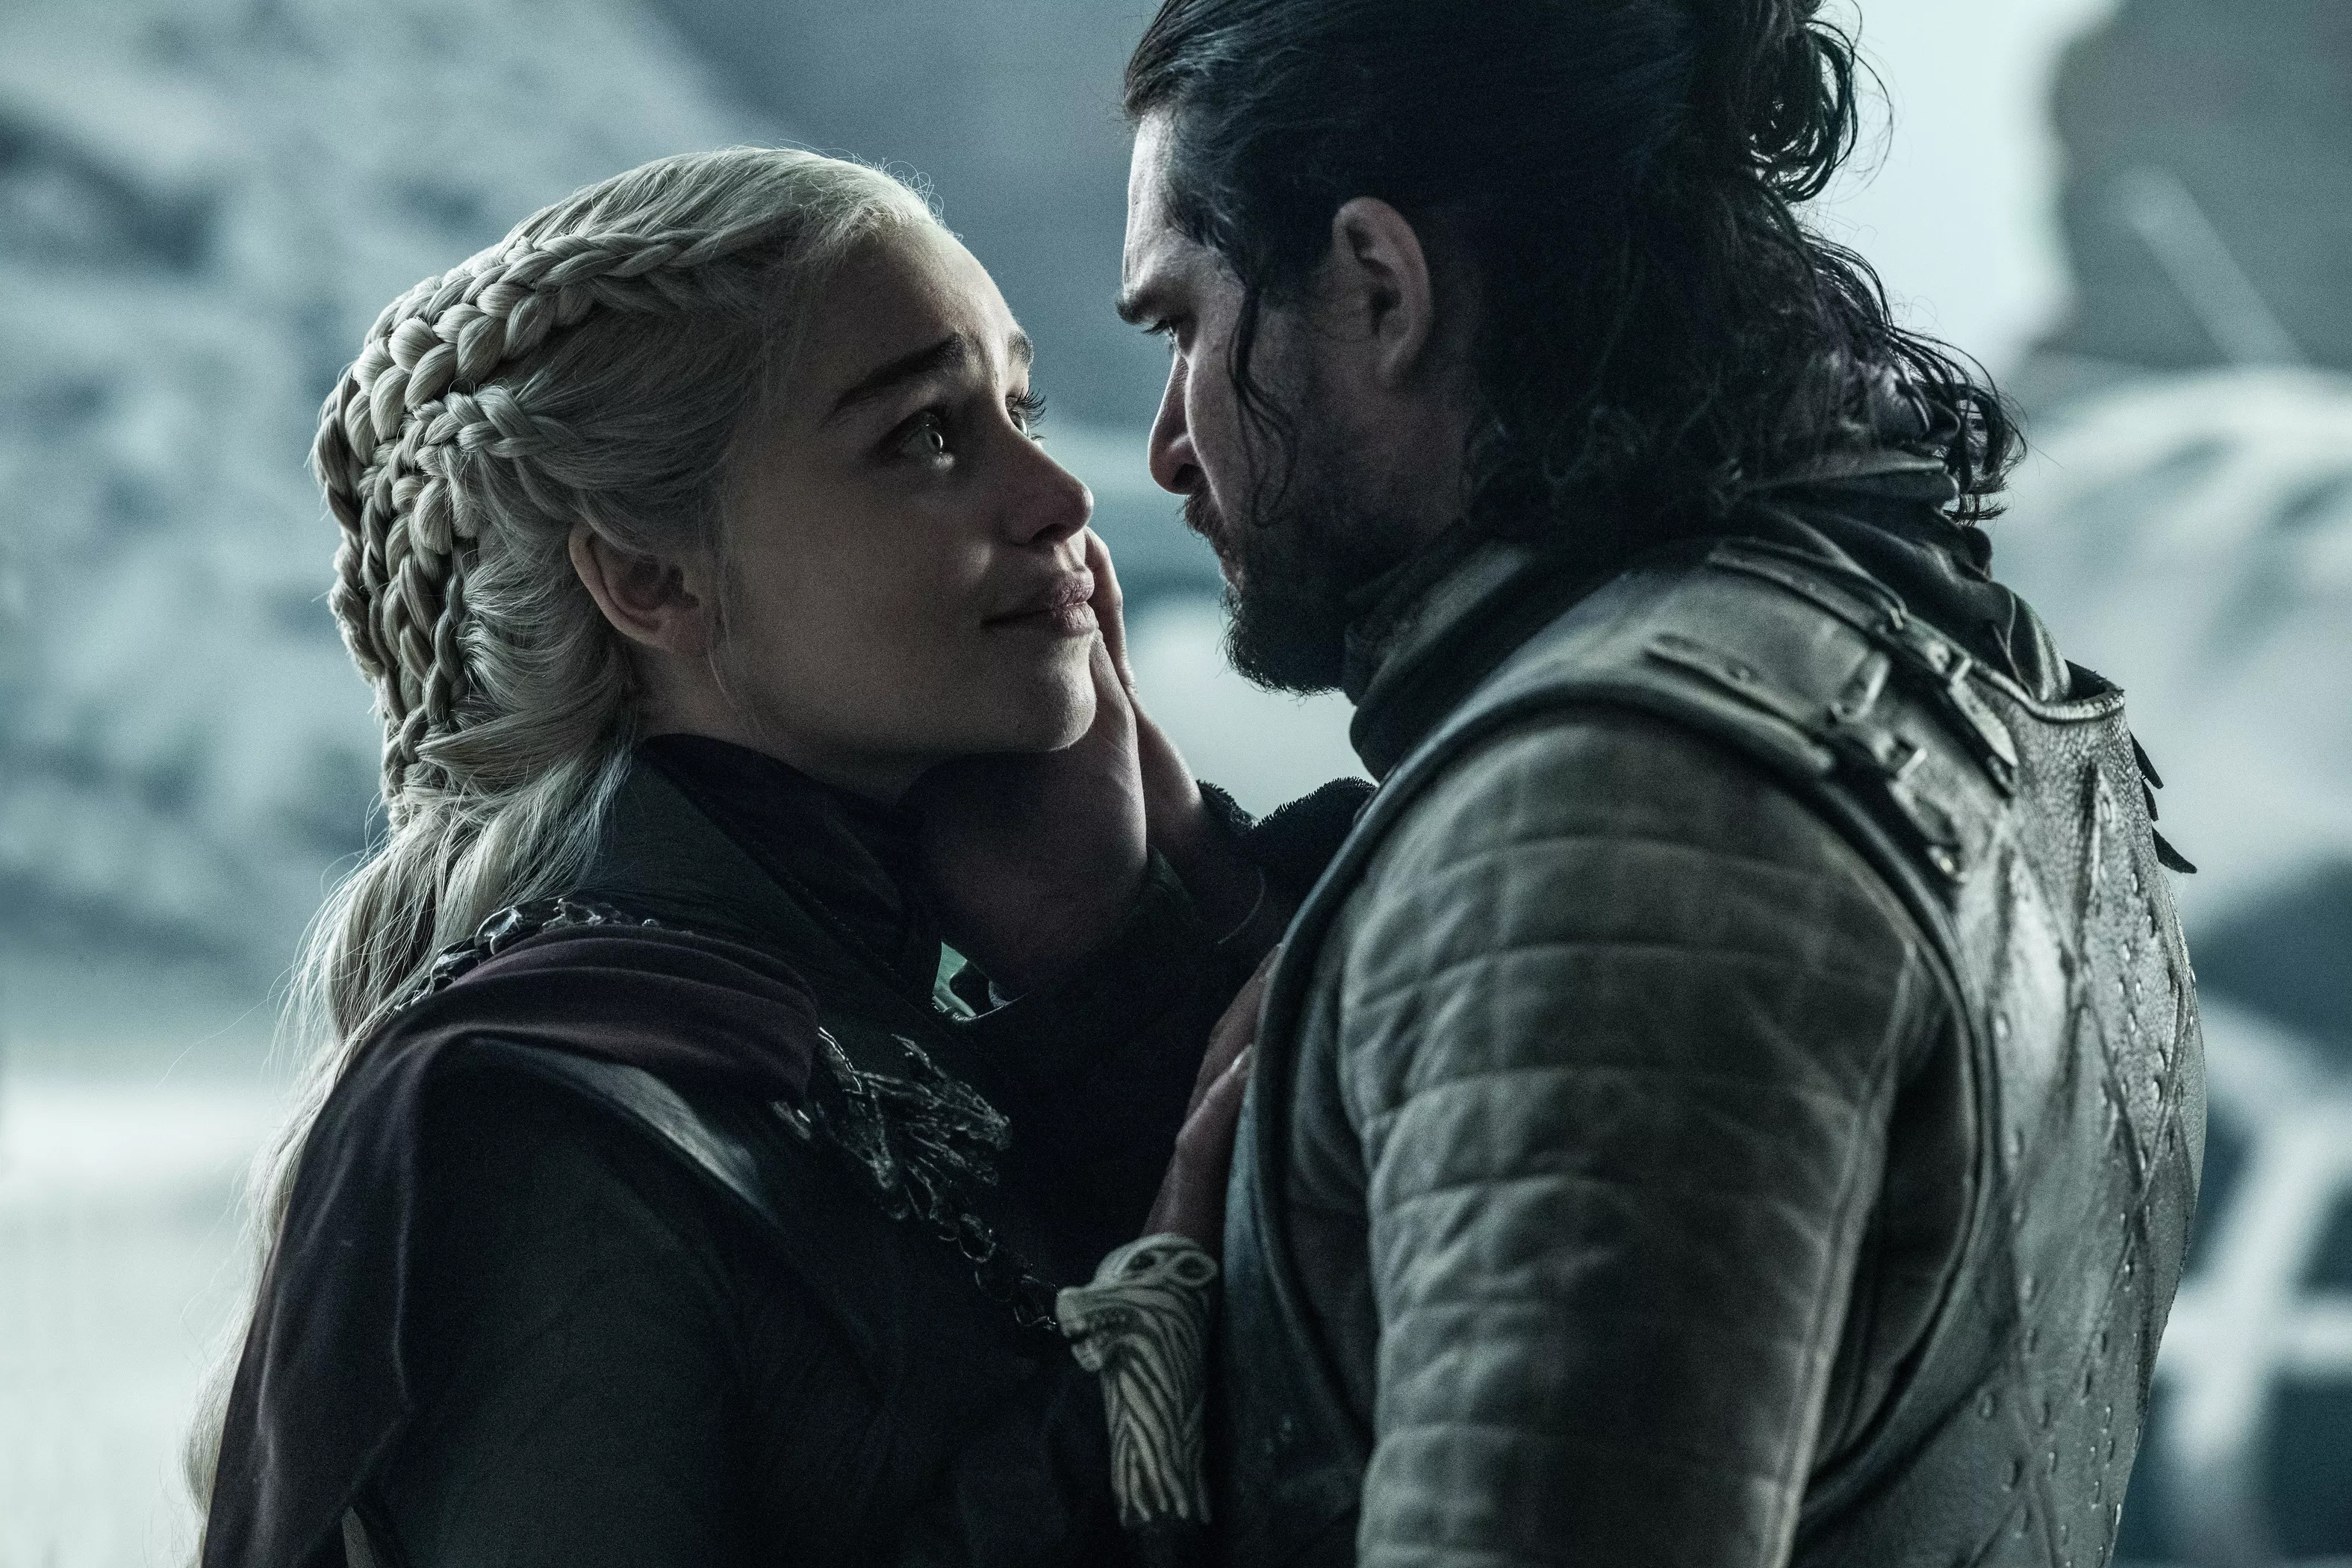 8x06 - The Iron 왕좌, 왕위 - Daenerys and Jon